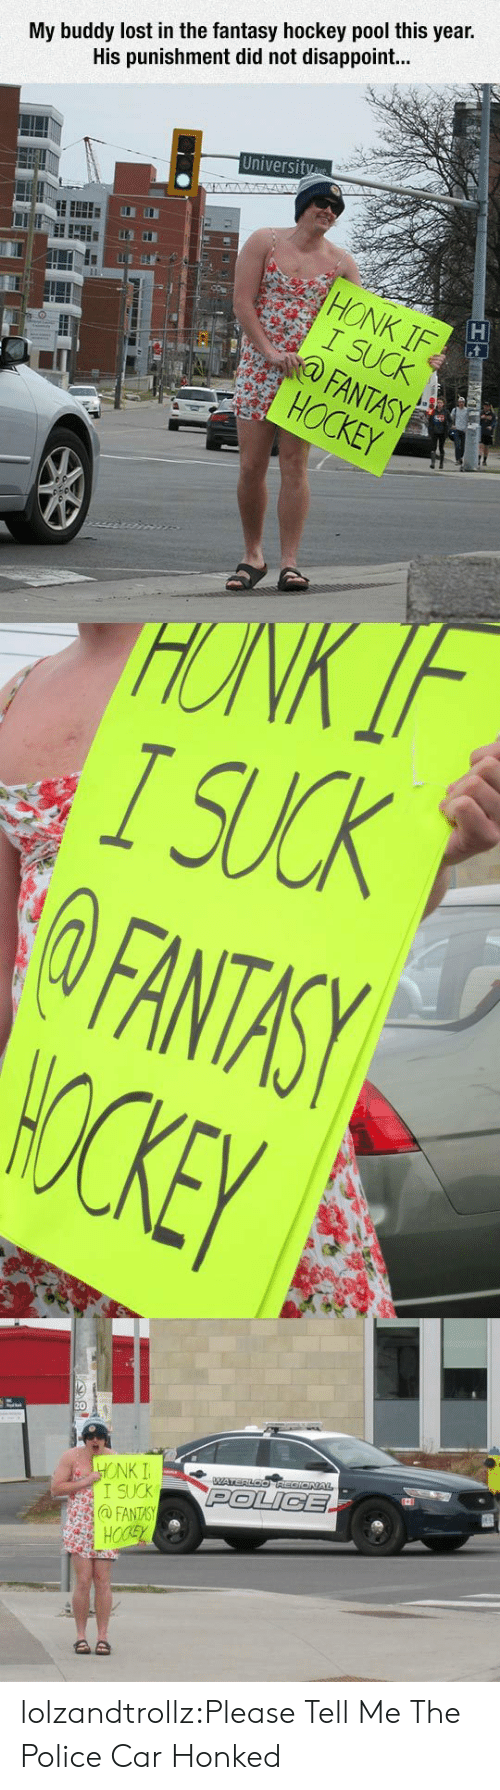 I Suck: My buddy lost in the fantasy hockey pool this year.  His punishment did not disappoint...  University  STA  HONK IF  I SUCK  FANTASY  HOCKEY  HONK IF  I SUCK  FANTASY  WOCKEY  HONK I  I SUCK  @FANTASY  HOCSY  WATERLOOREGIONAL  POLICE  AD lolzandtrollz:Please Tell Me The Police Car Honked